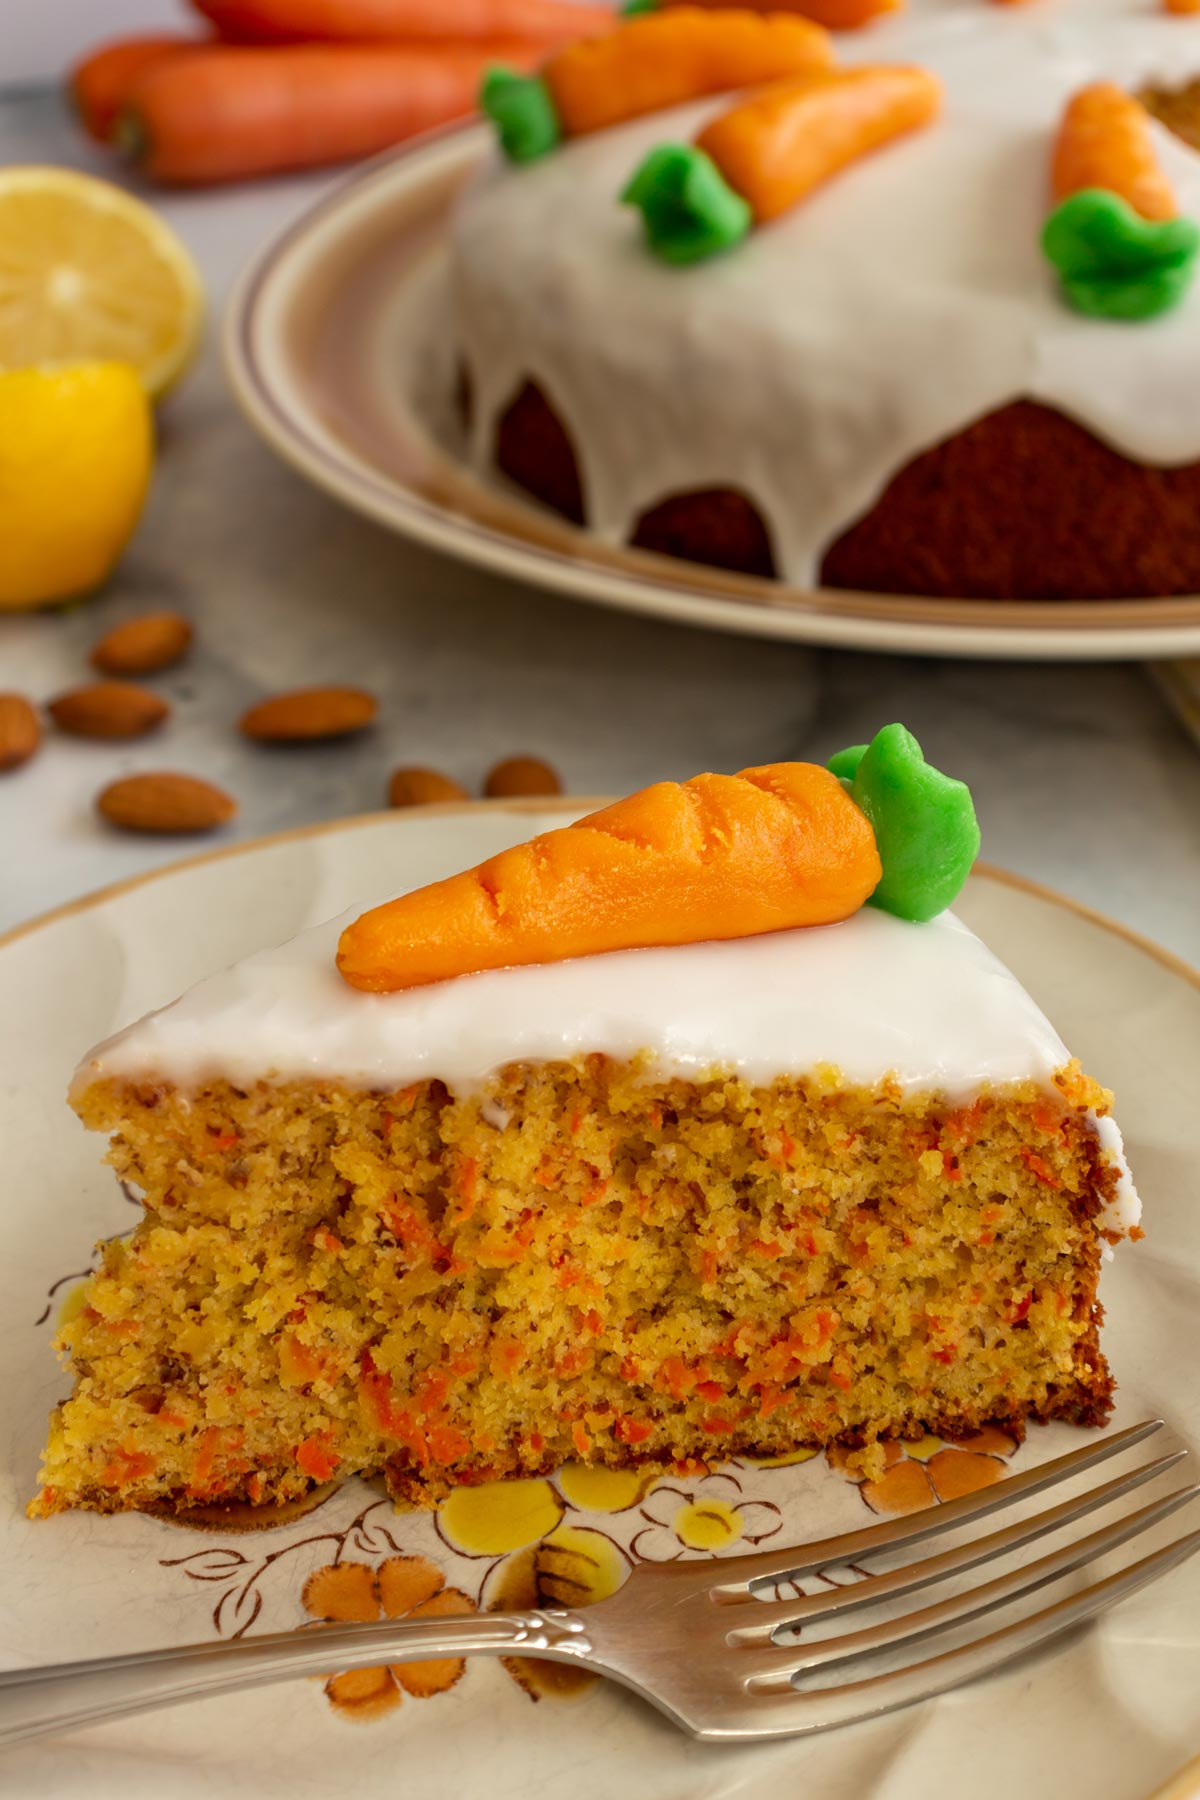 Closeup of a slice of Swiss carrot cake topped with a marzipan carrot on a plate.